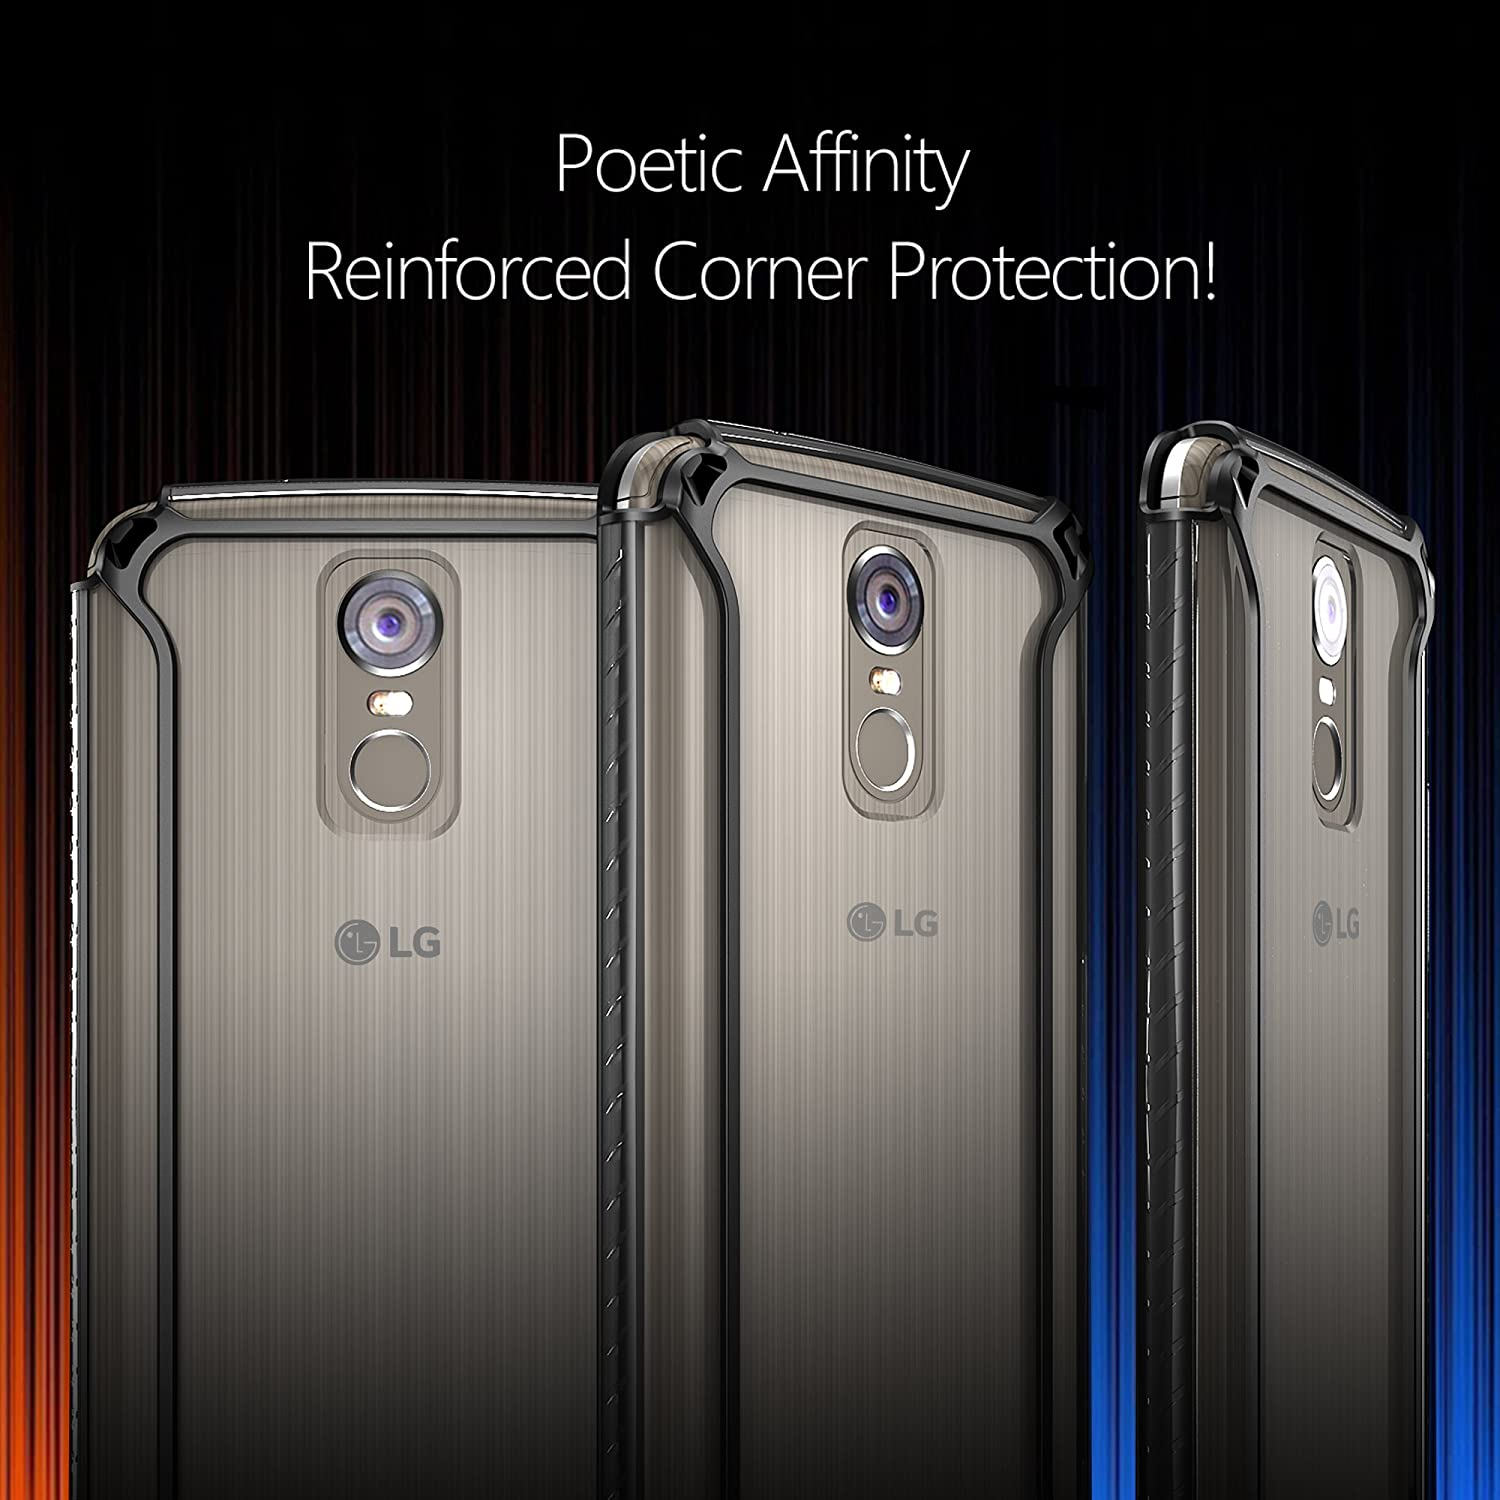 Amazon.com: Poetic Affinity Slim Fit LG Stylo 3 Plus/LG Stylo 3 Clear Case with Anti-Slip Side Grip and Reinforced Corner Protection Bumper for LG Stylo 3 ...